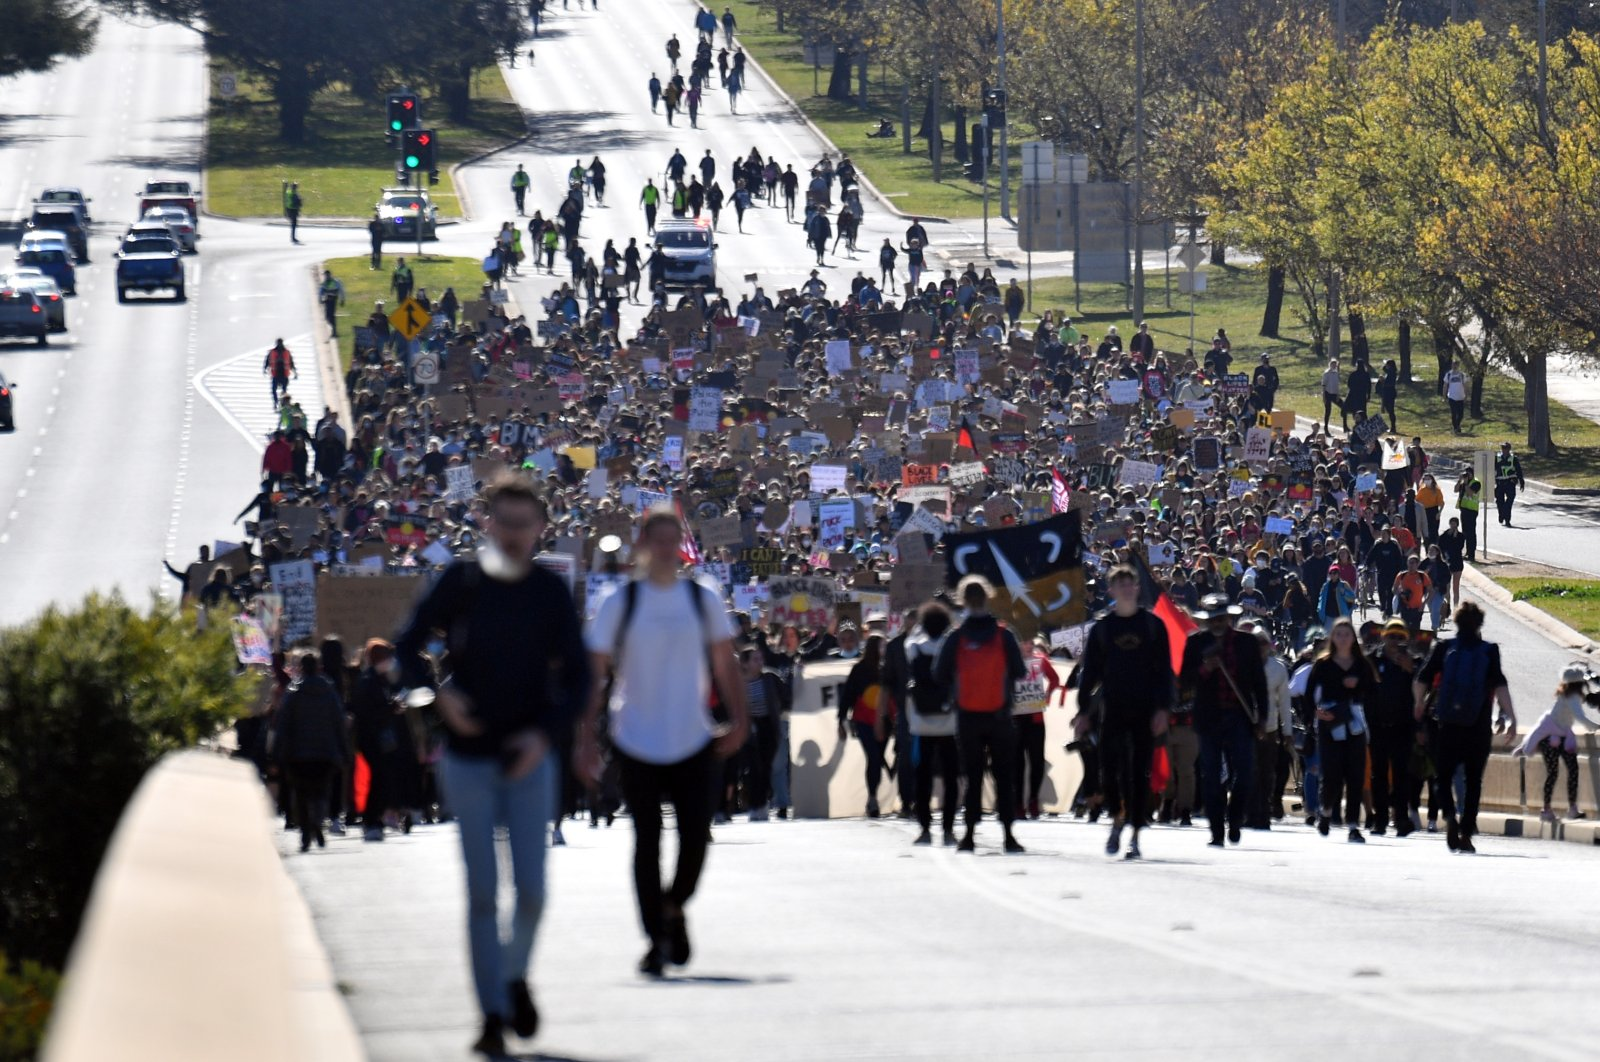 Black Lives Matter protesters march toward Parliament House in Canberra, Australia, June 5, 2020. (EPA Photo)